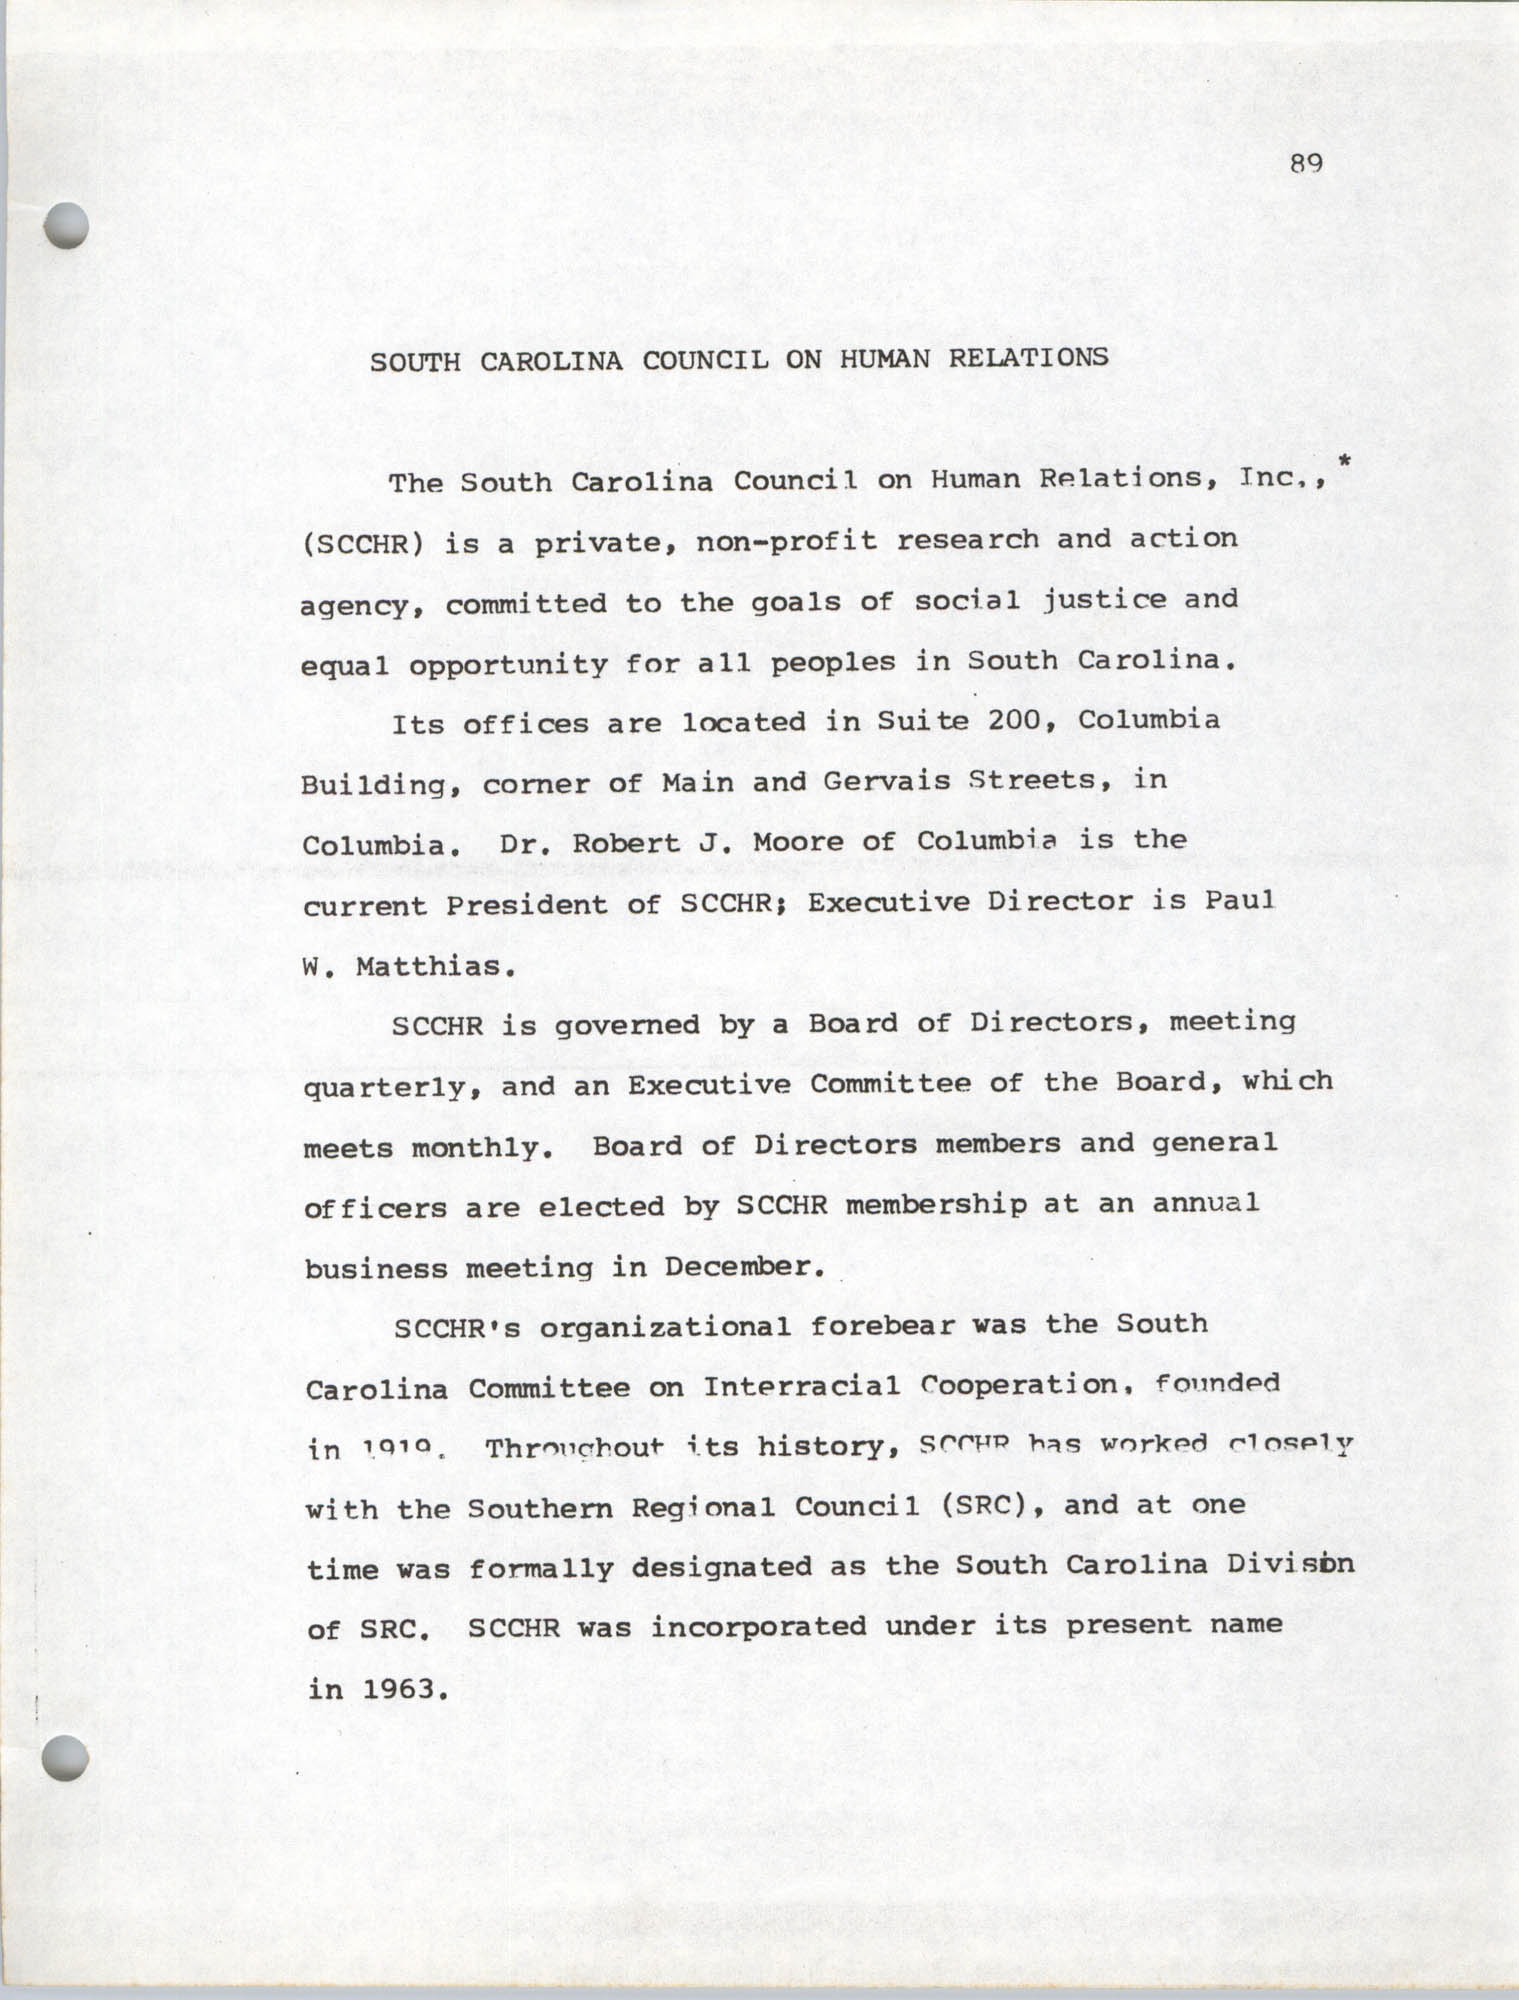 Coastal Plains Human Development Coordinate Council, Page 89